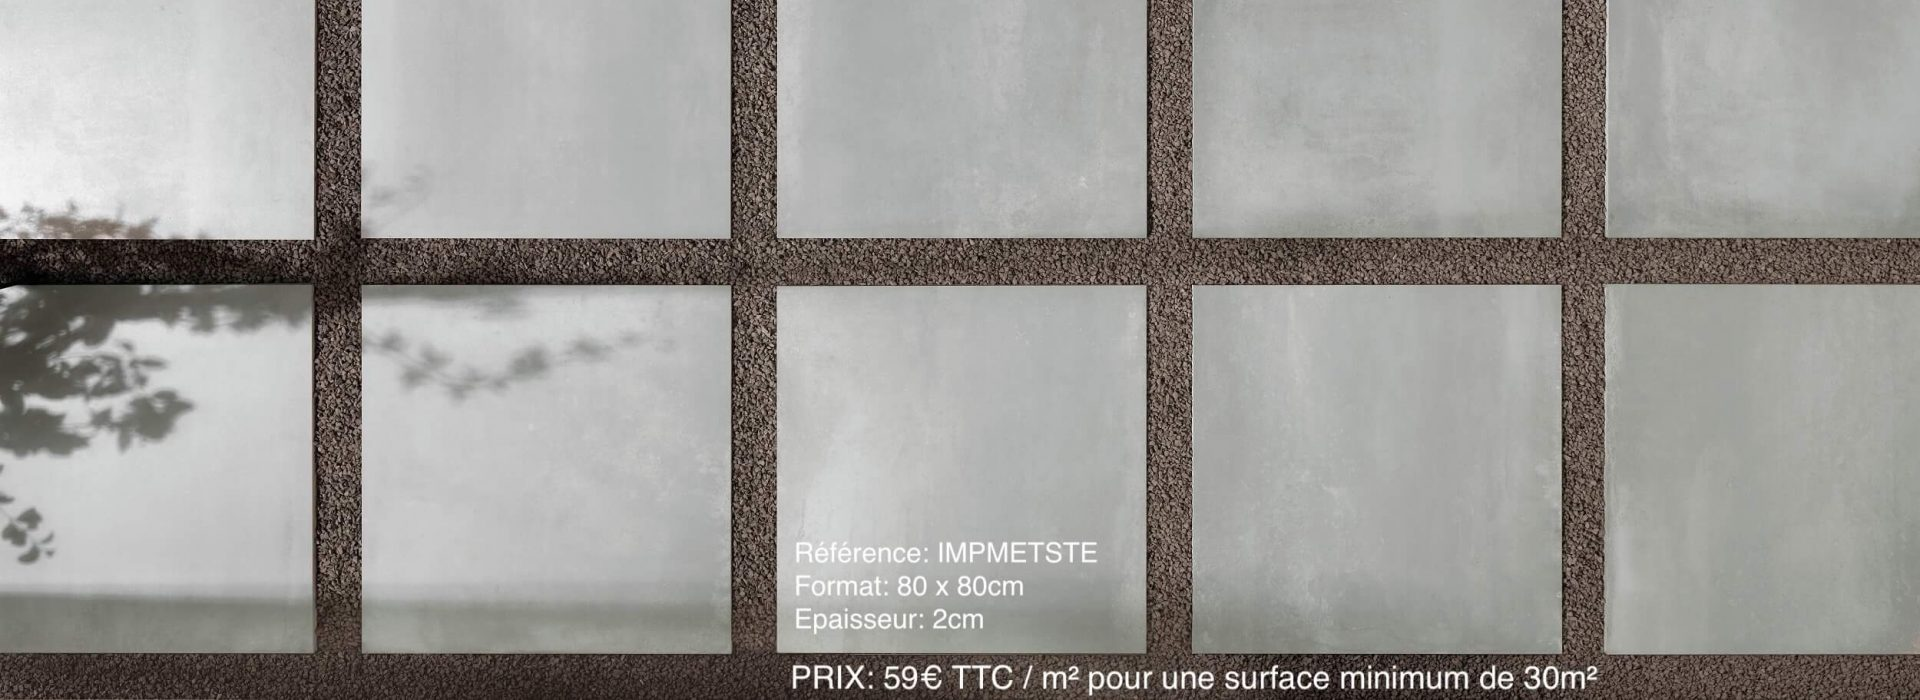 imp metaline steel 80x80 20mm 59€ m² ttc